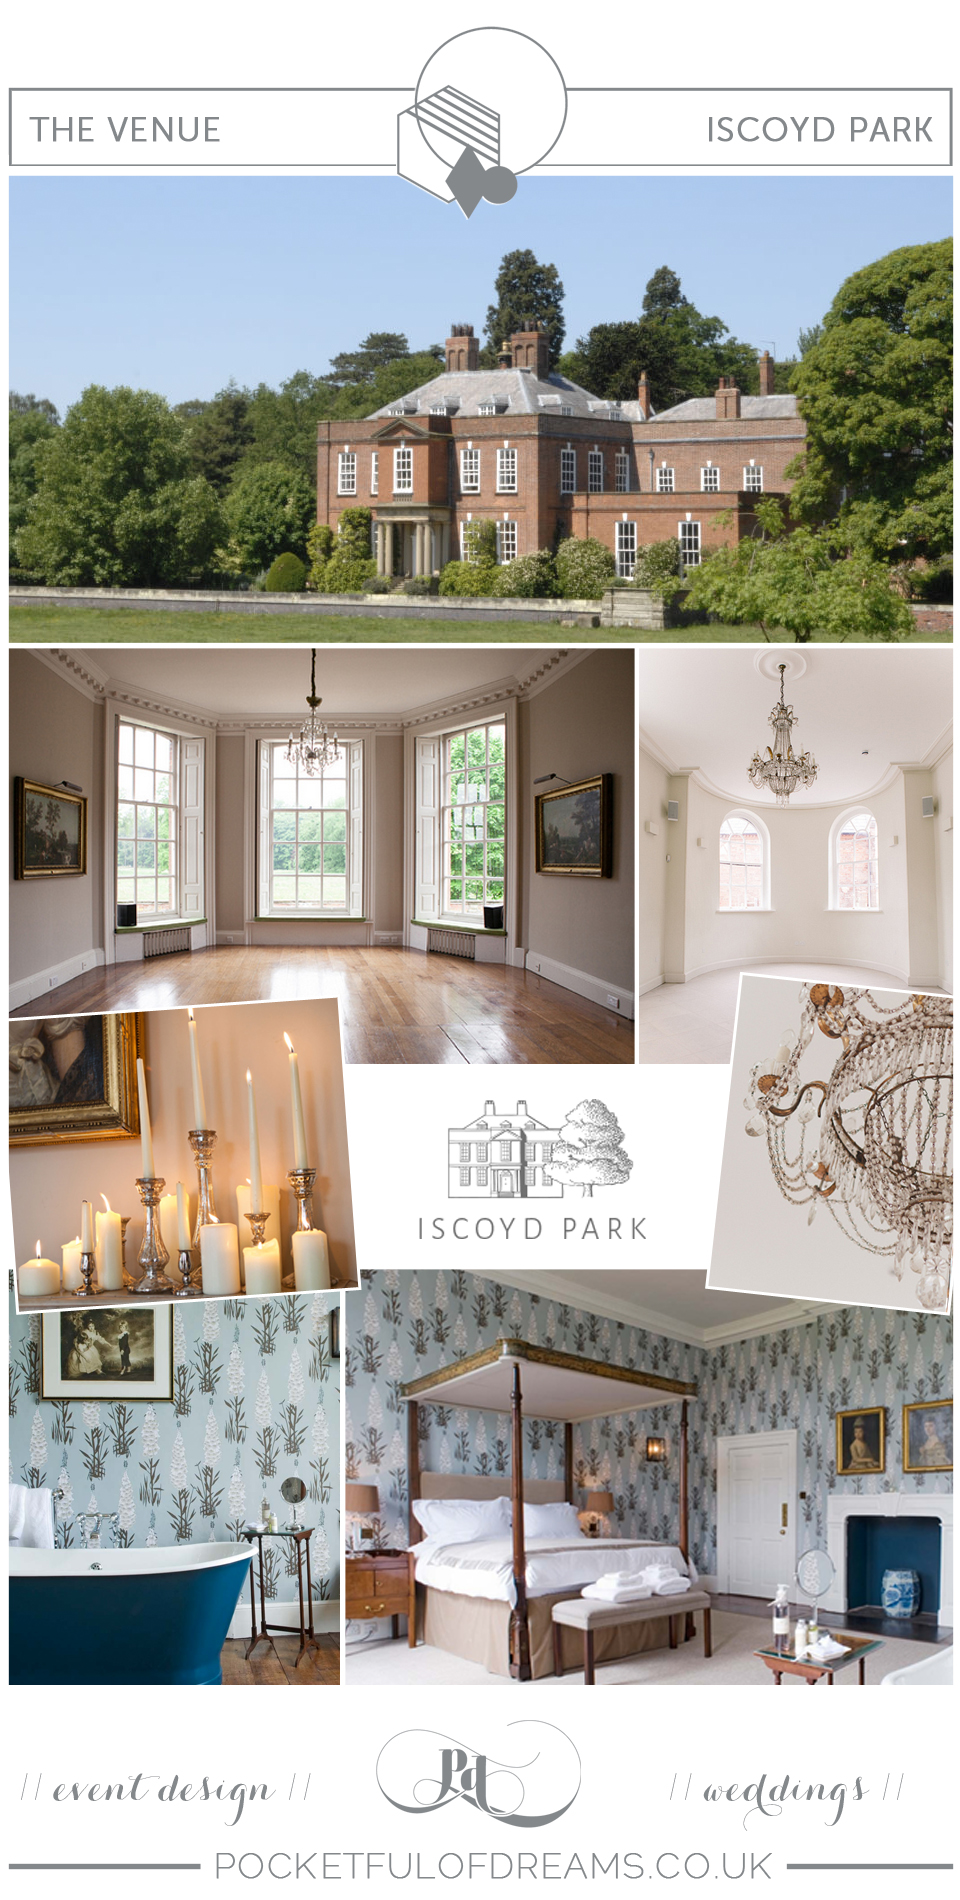 Country Elegance, Country House Wedding, Weekend Wedding, Elegant Wedding, Luxury wedding, Pocketful of Dreams, Wedding PLanner, UK, England, Destination Wedding, English Wedding, British Wedding, Country House Wedding Venues, Iscoyd Park